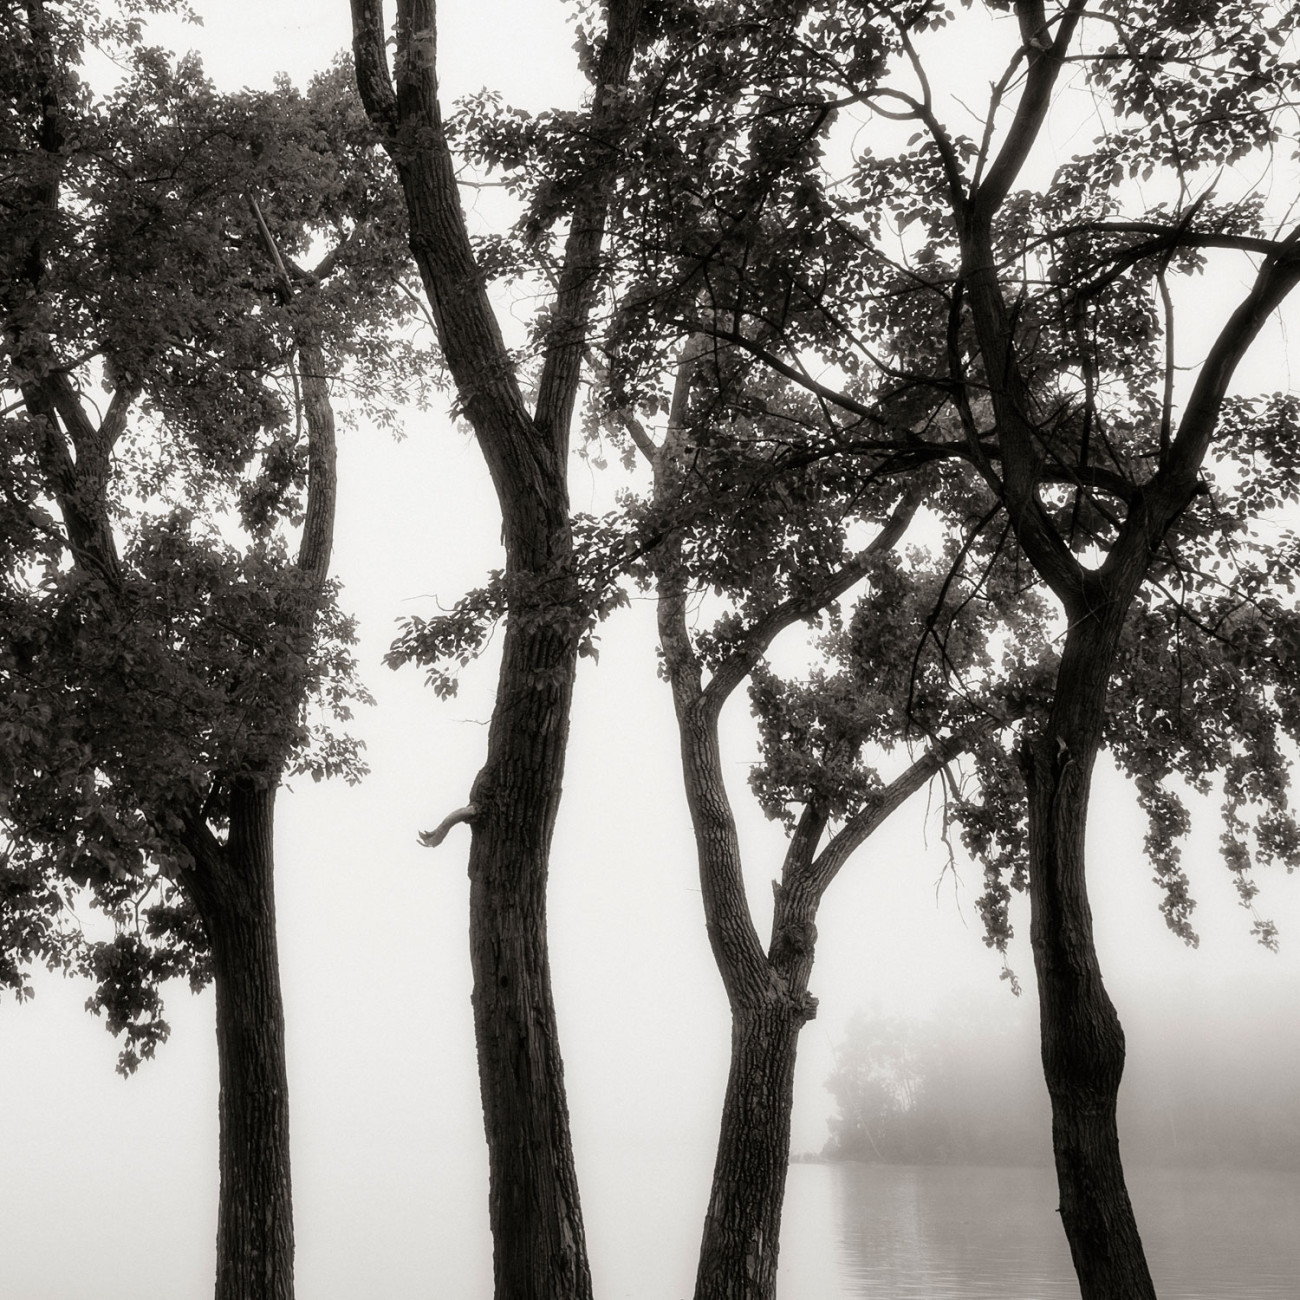 Four trees and the Hudson River, Hudson, New York, 2013